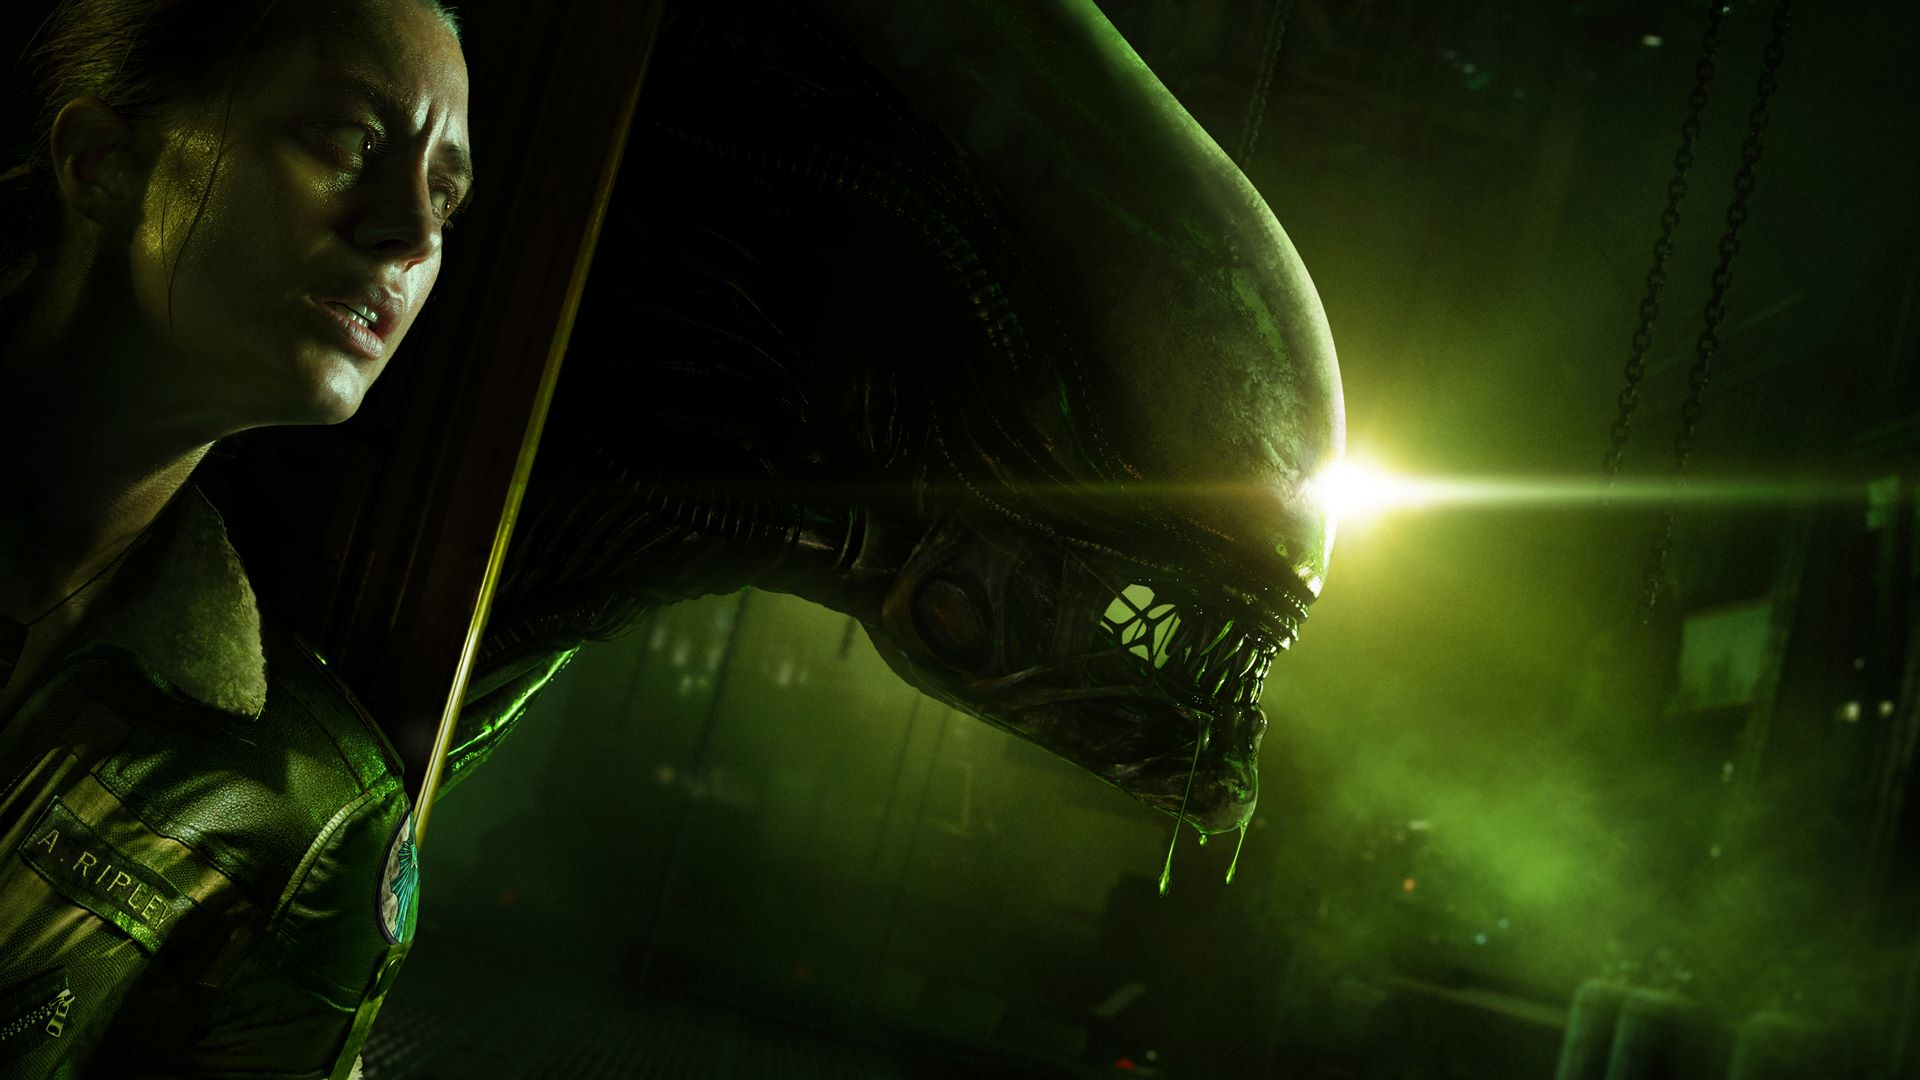 The old fear and tension returns… - Creative Assembly's effort at a legitimate and direct sequel to the original Alien film makes for one of 2014's best video game experiences.